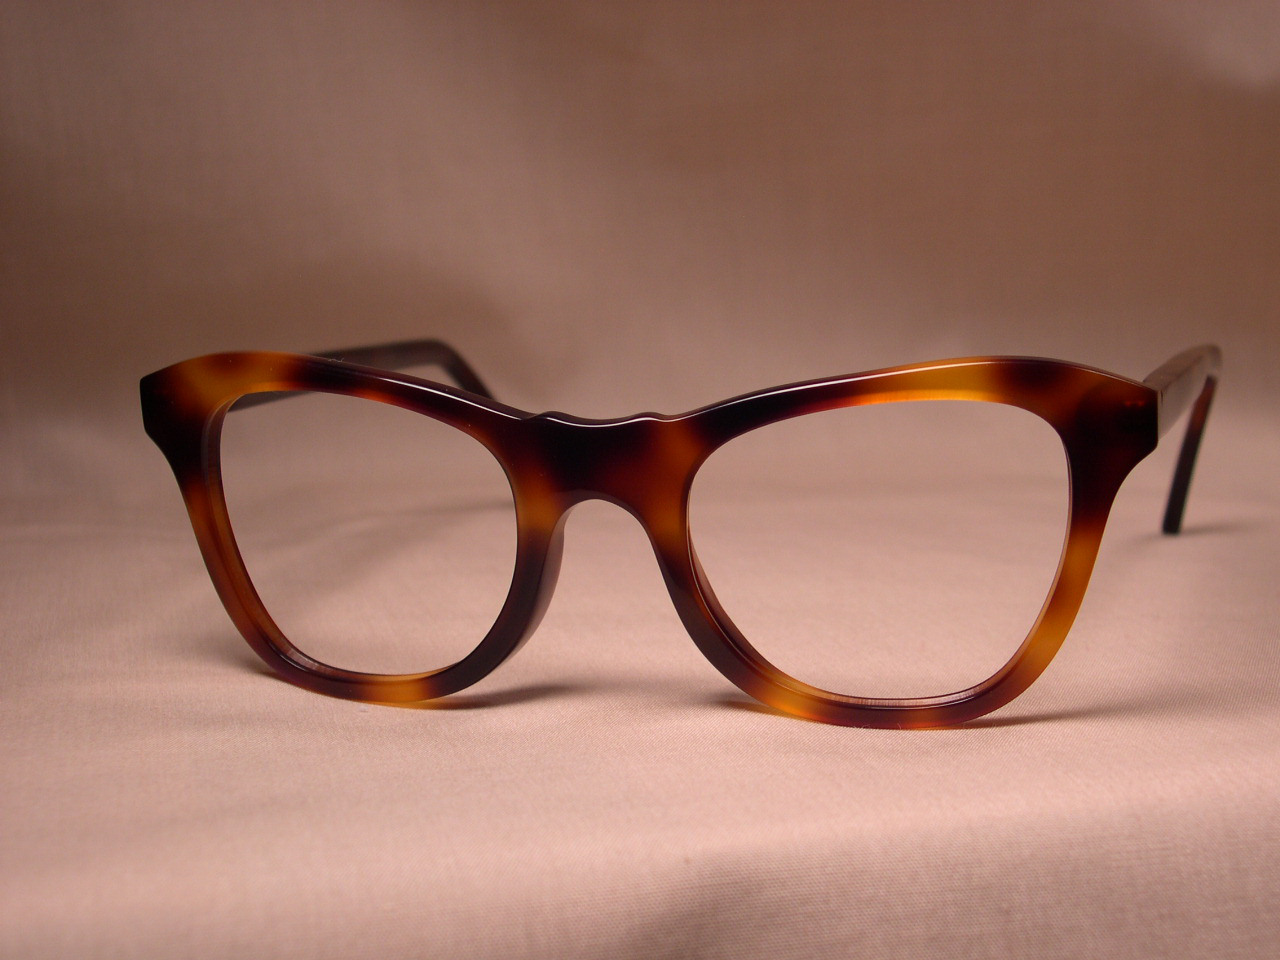 Indivijual-Custom-Glasses-45.jpg